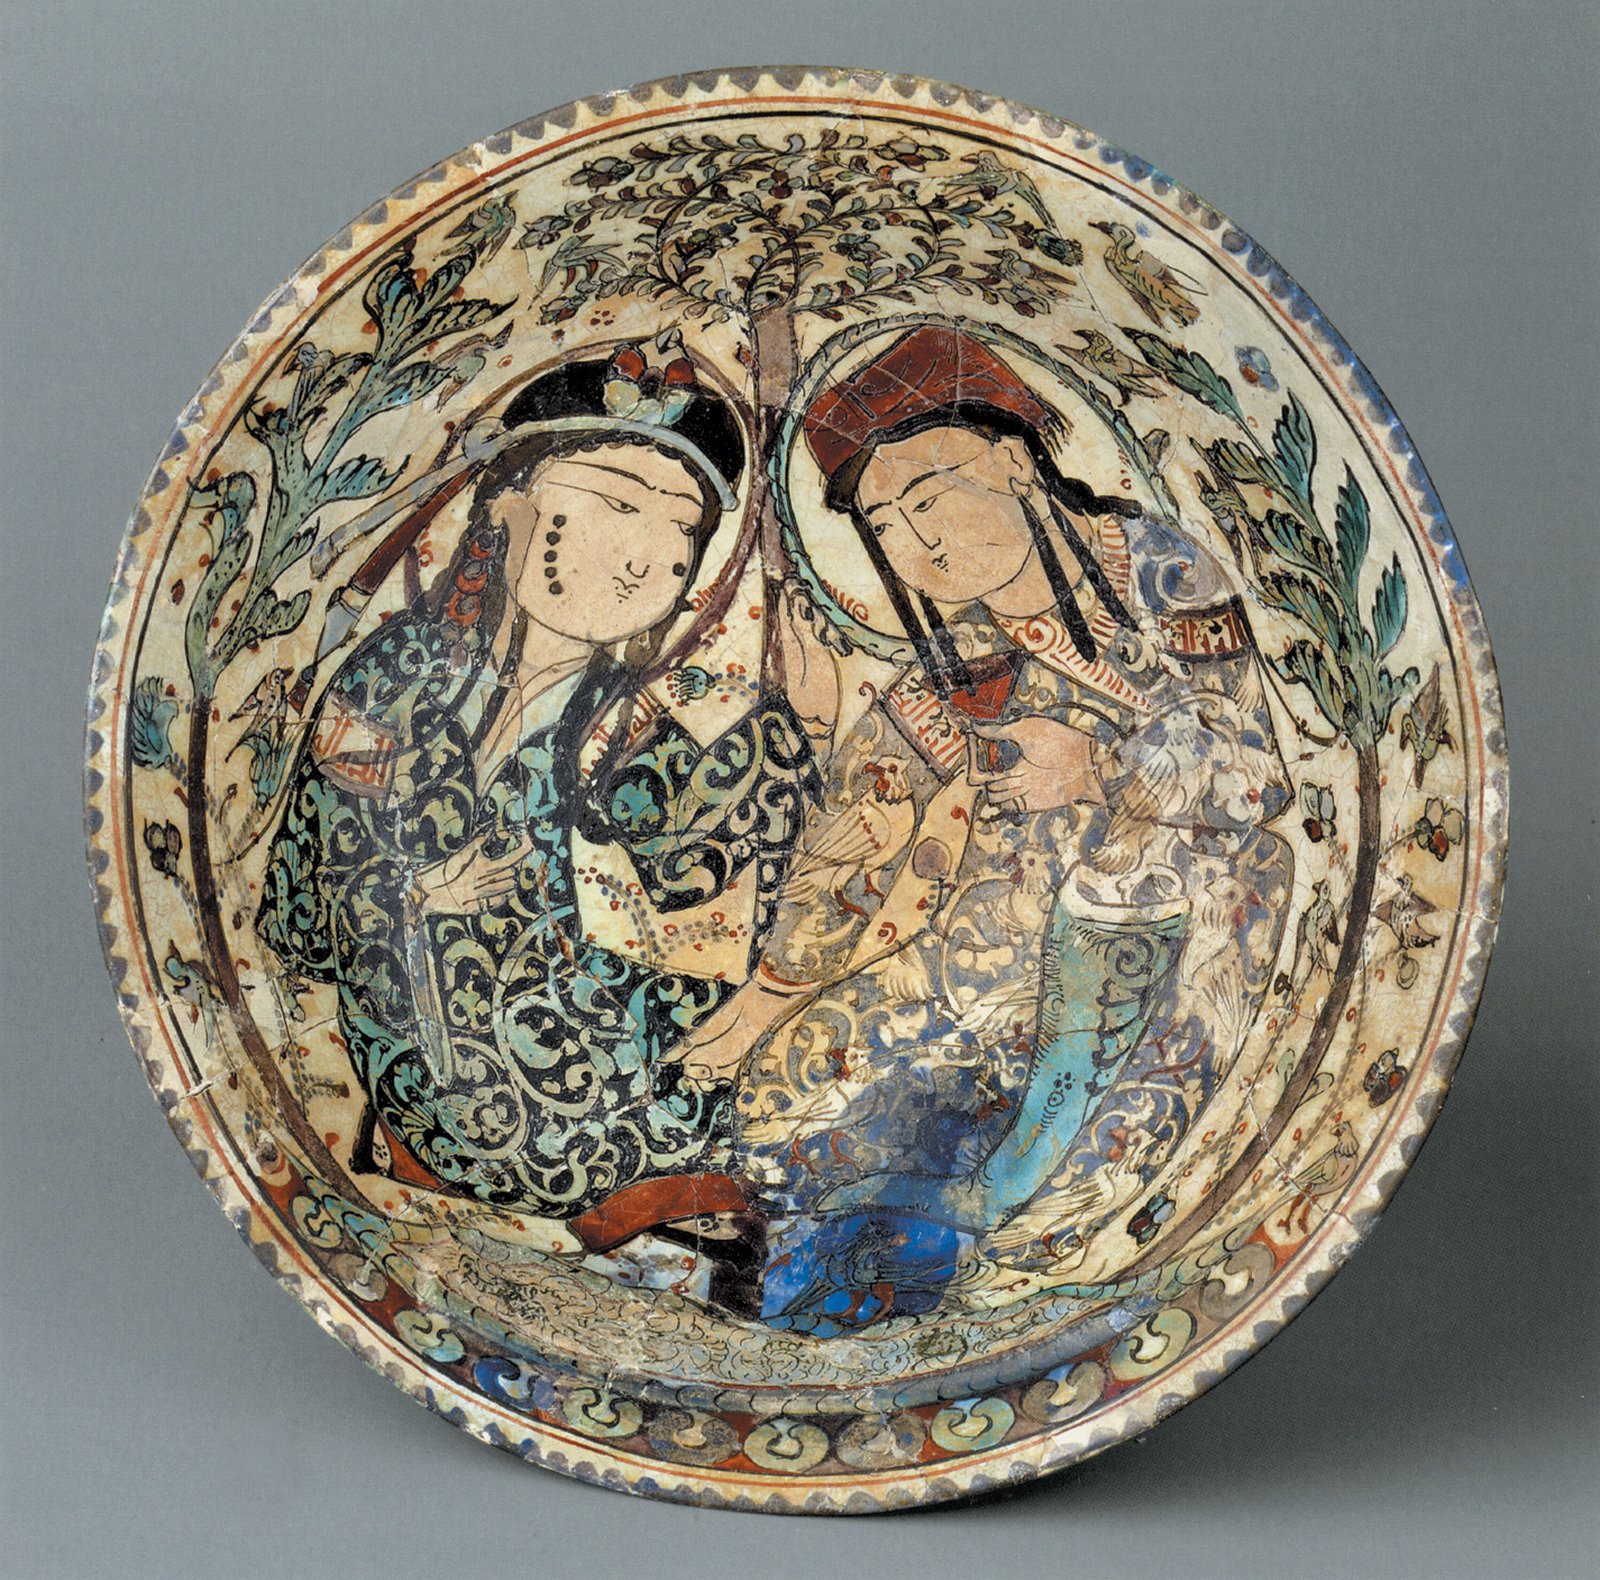 'Bowl with Couple in a Garden'; stonepaste plate, Iran, late twelfth–early thirteenth century